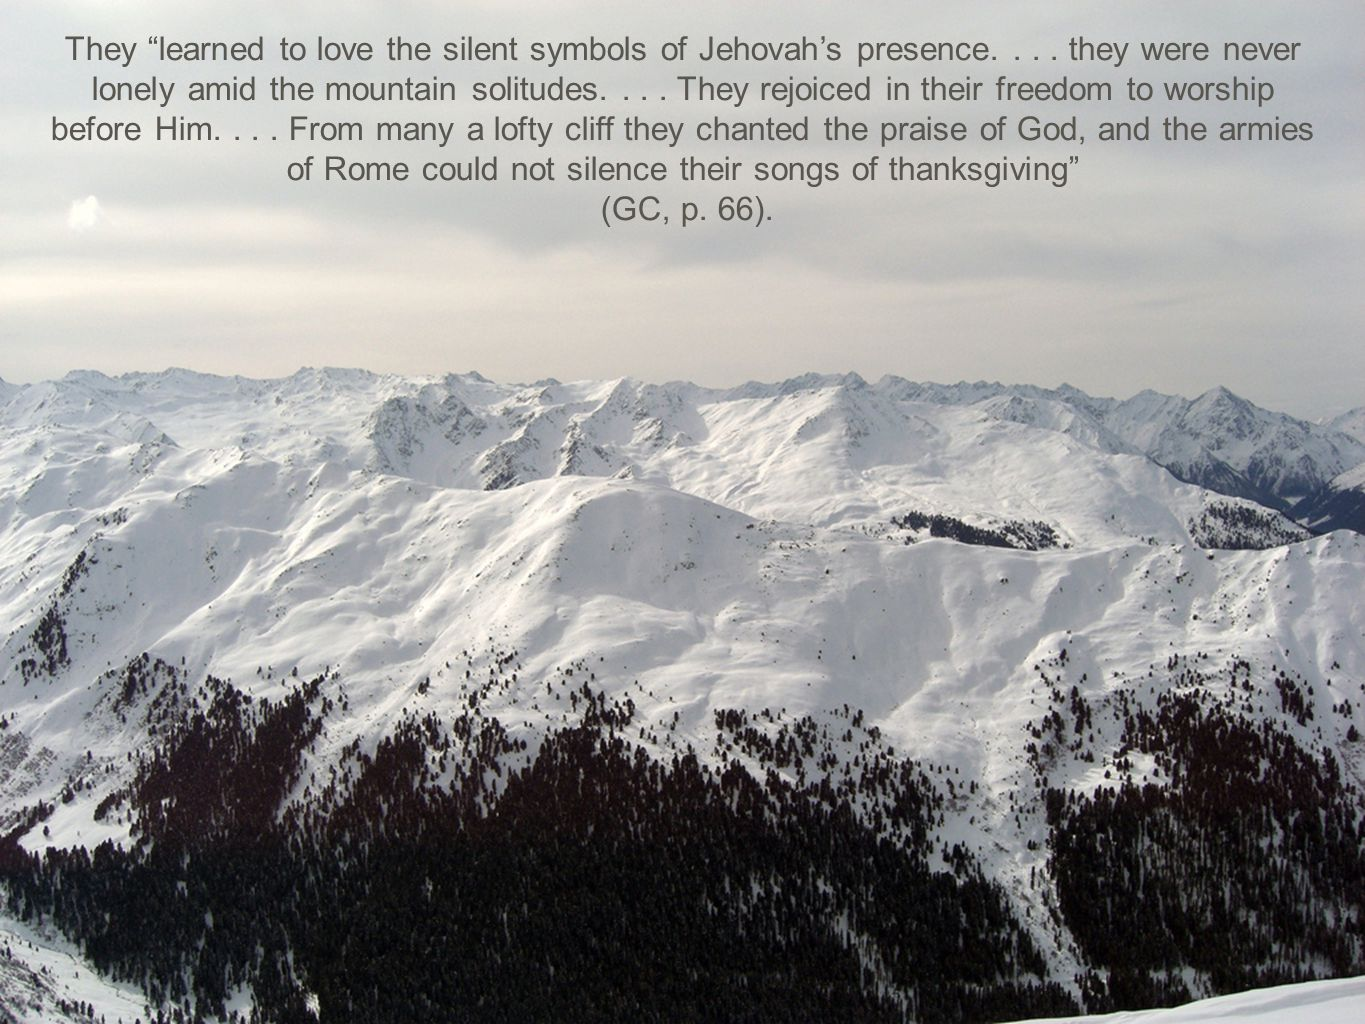 They learned to love the silent symbols of Jehovah's presence....